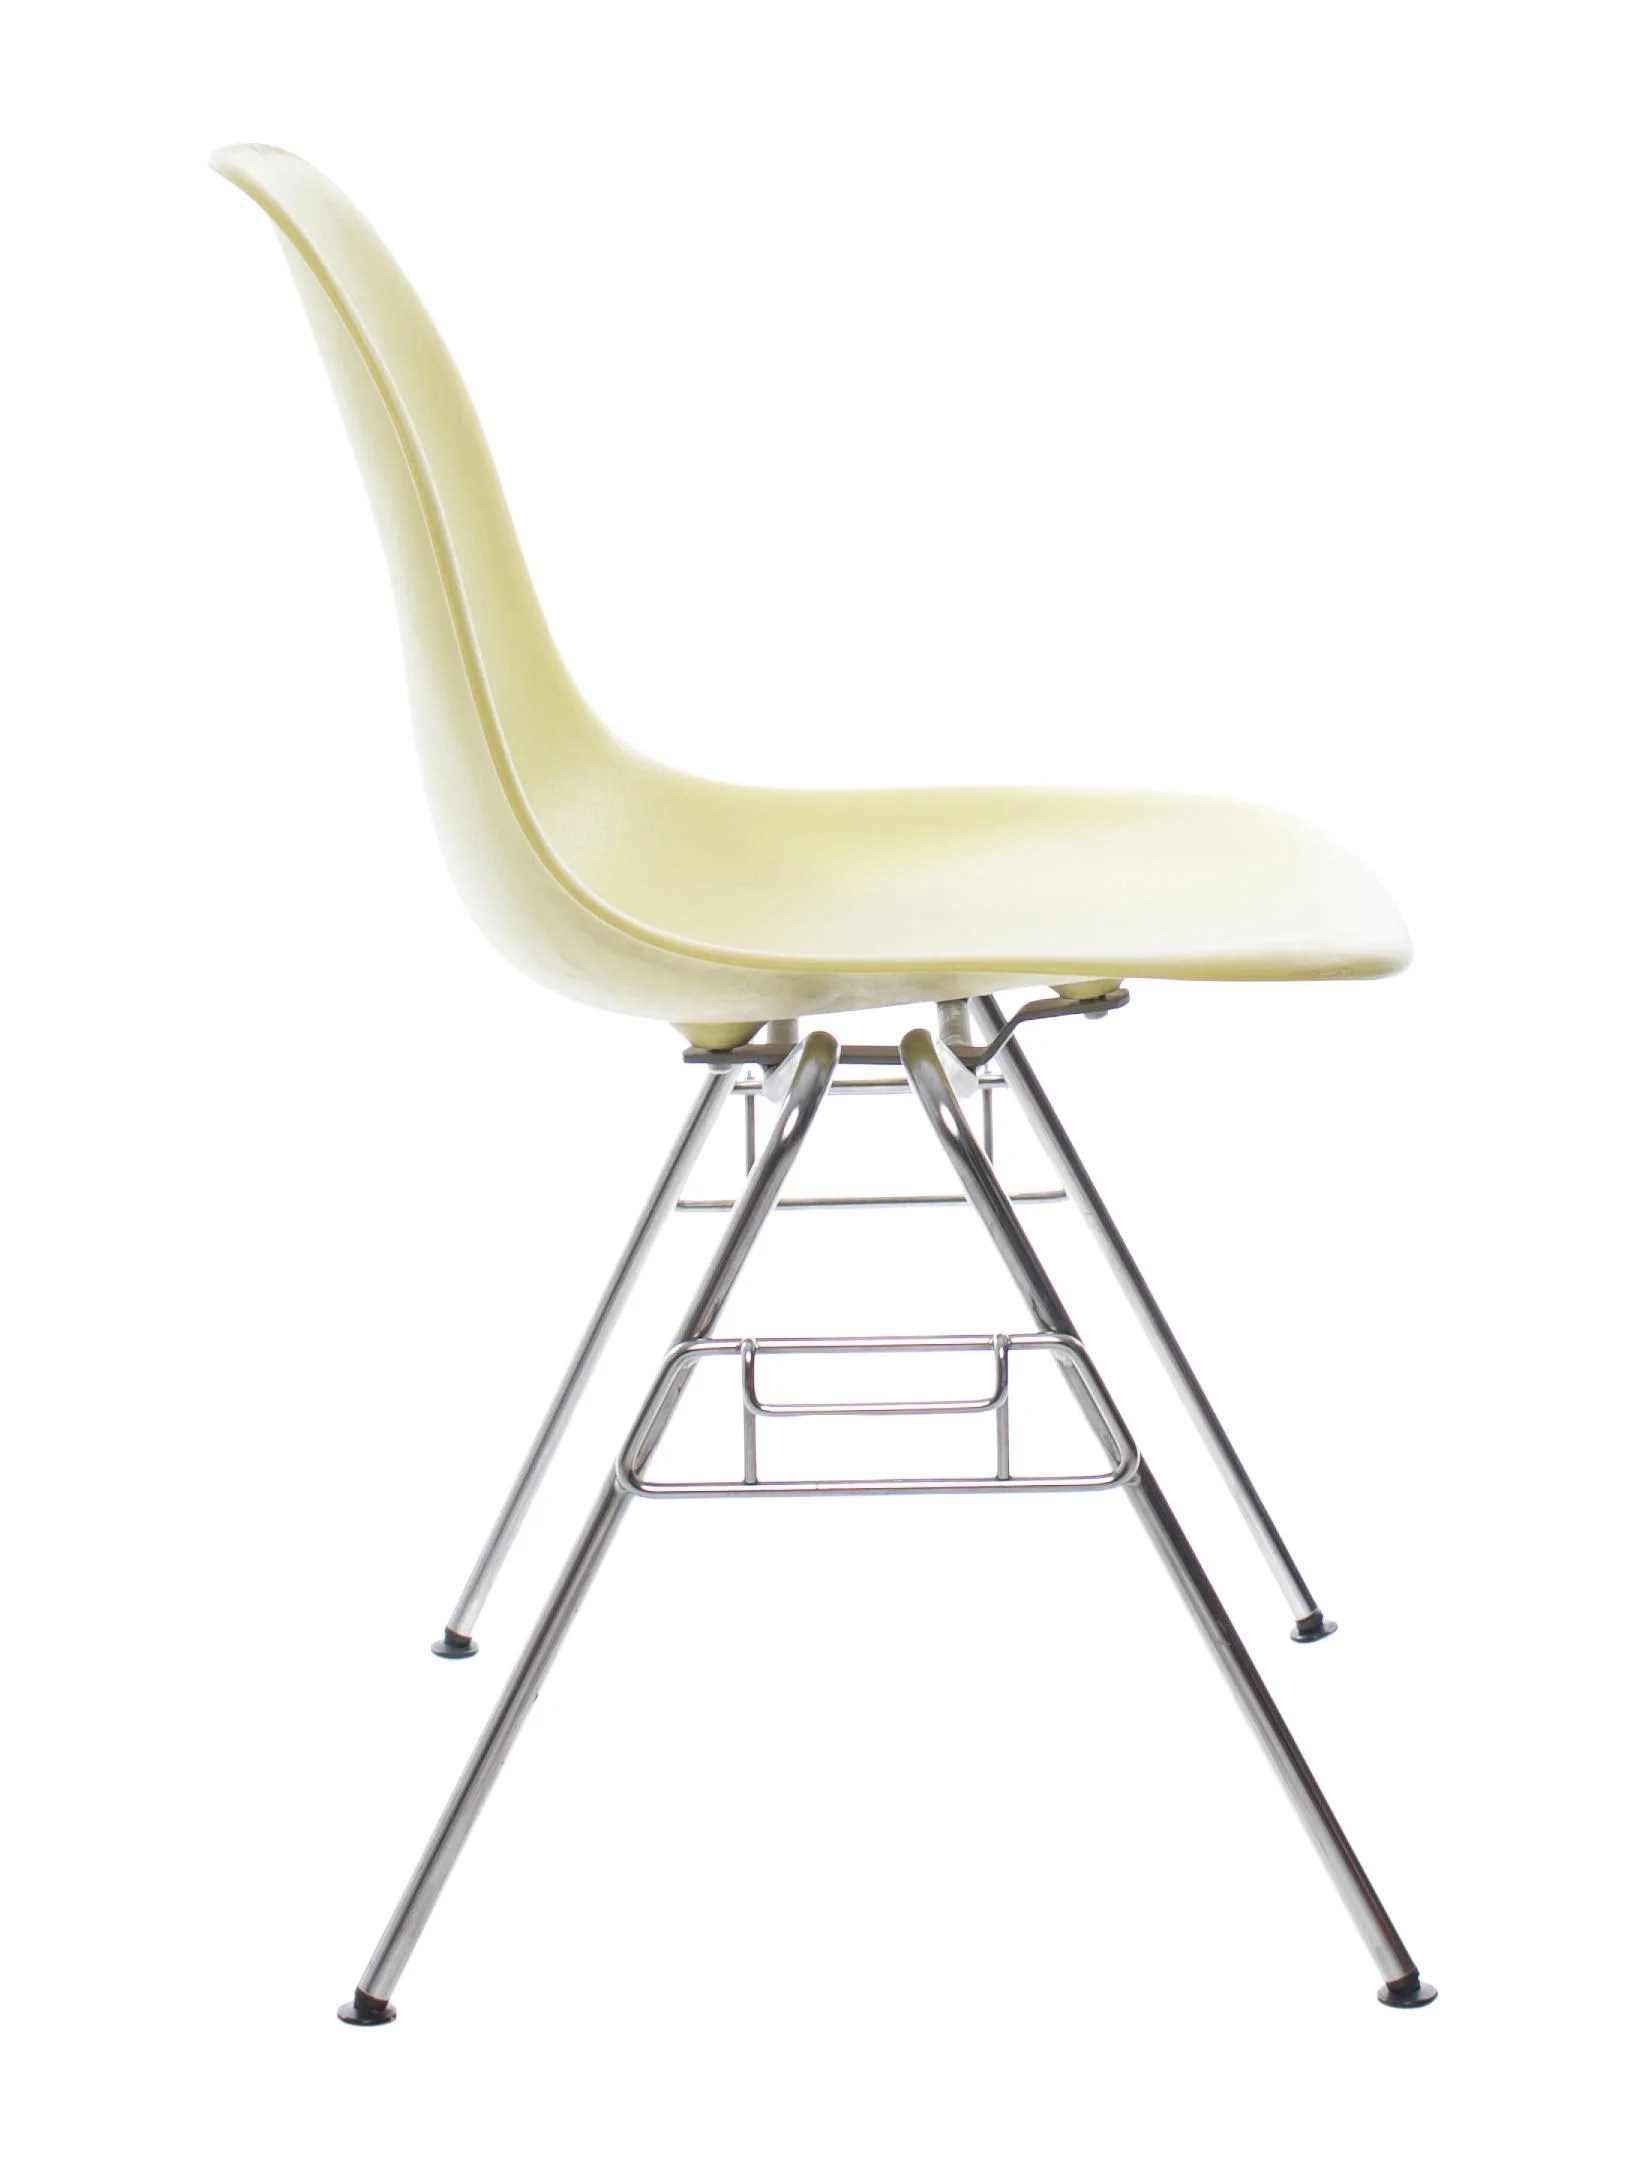 Plastic Stacking Chairs Eames Molded Plastic Stacking Chairs Furniture